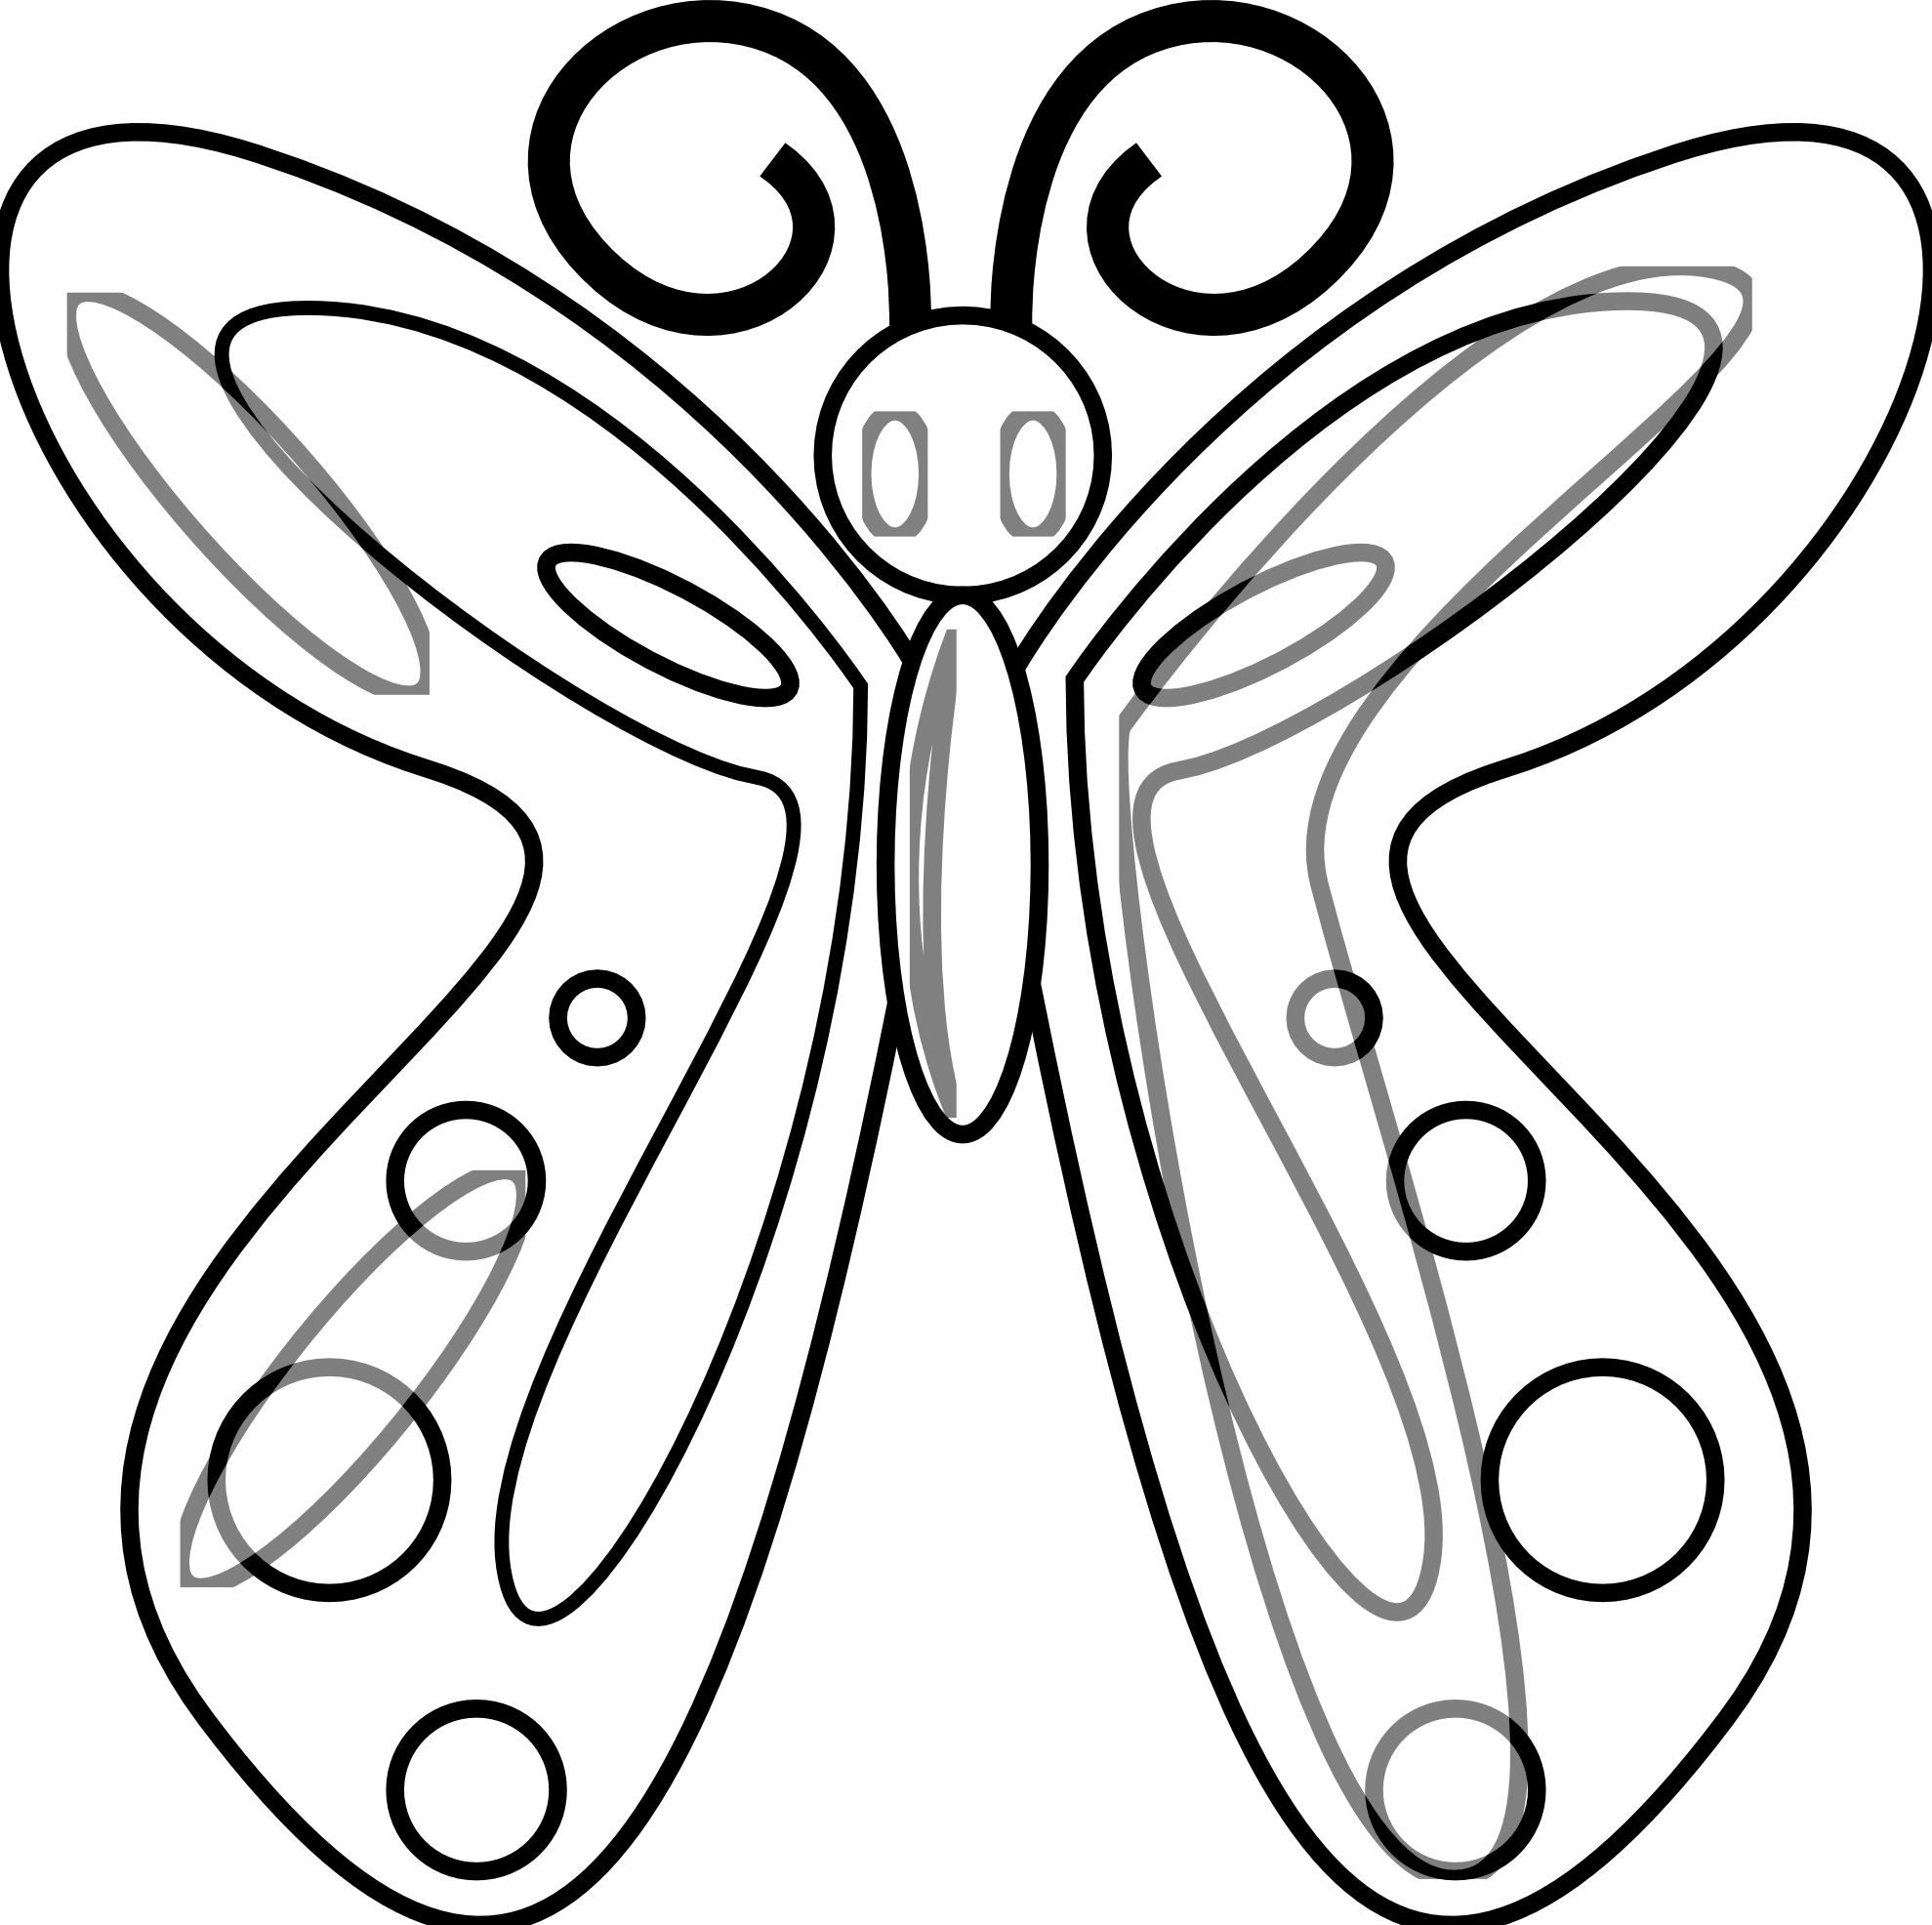 Rose and butterfly clipart black and white clipart transparent stock dongetrabi: Black And White Butterfly Drawing Images clipart transparent stock